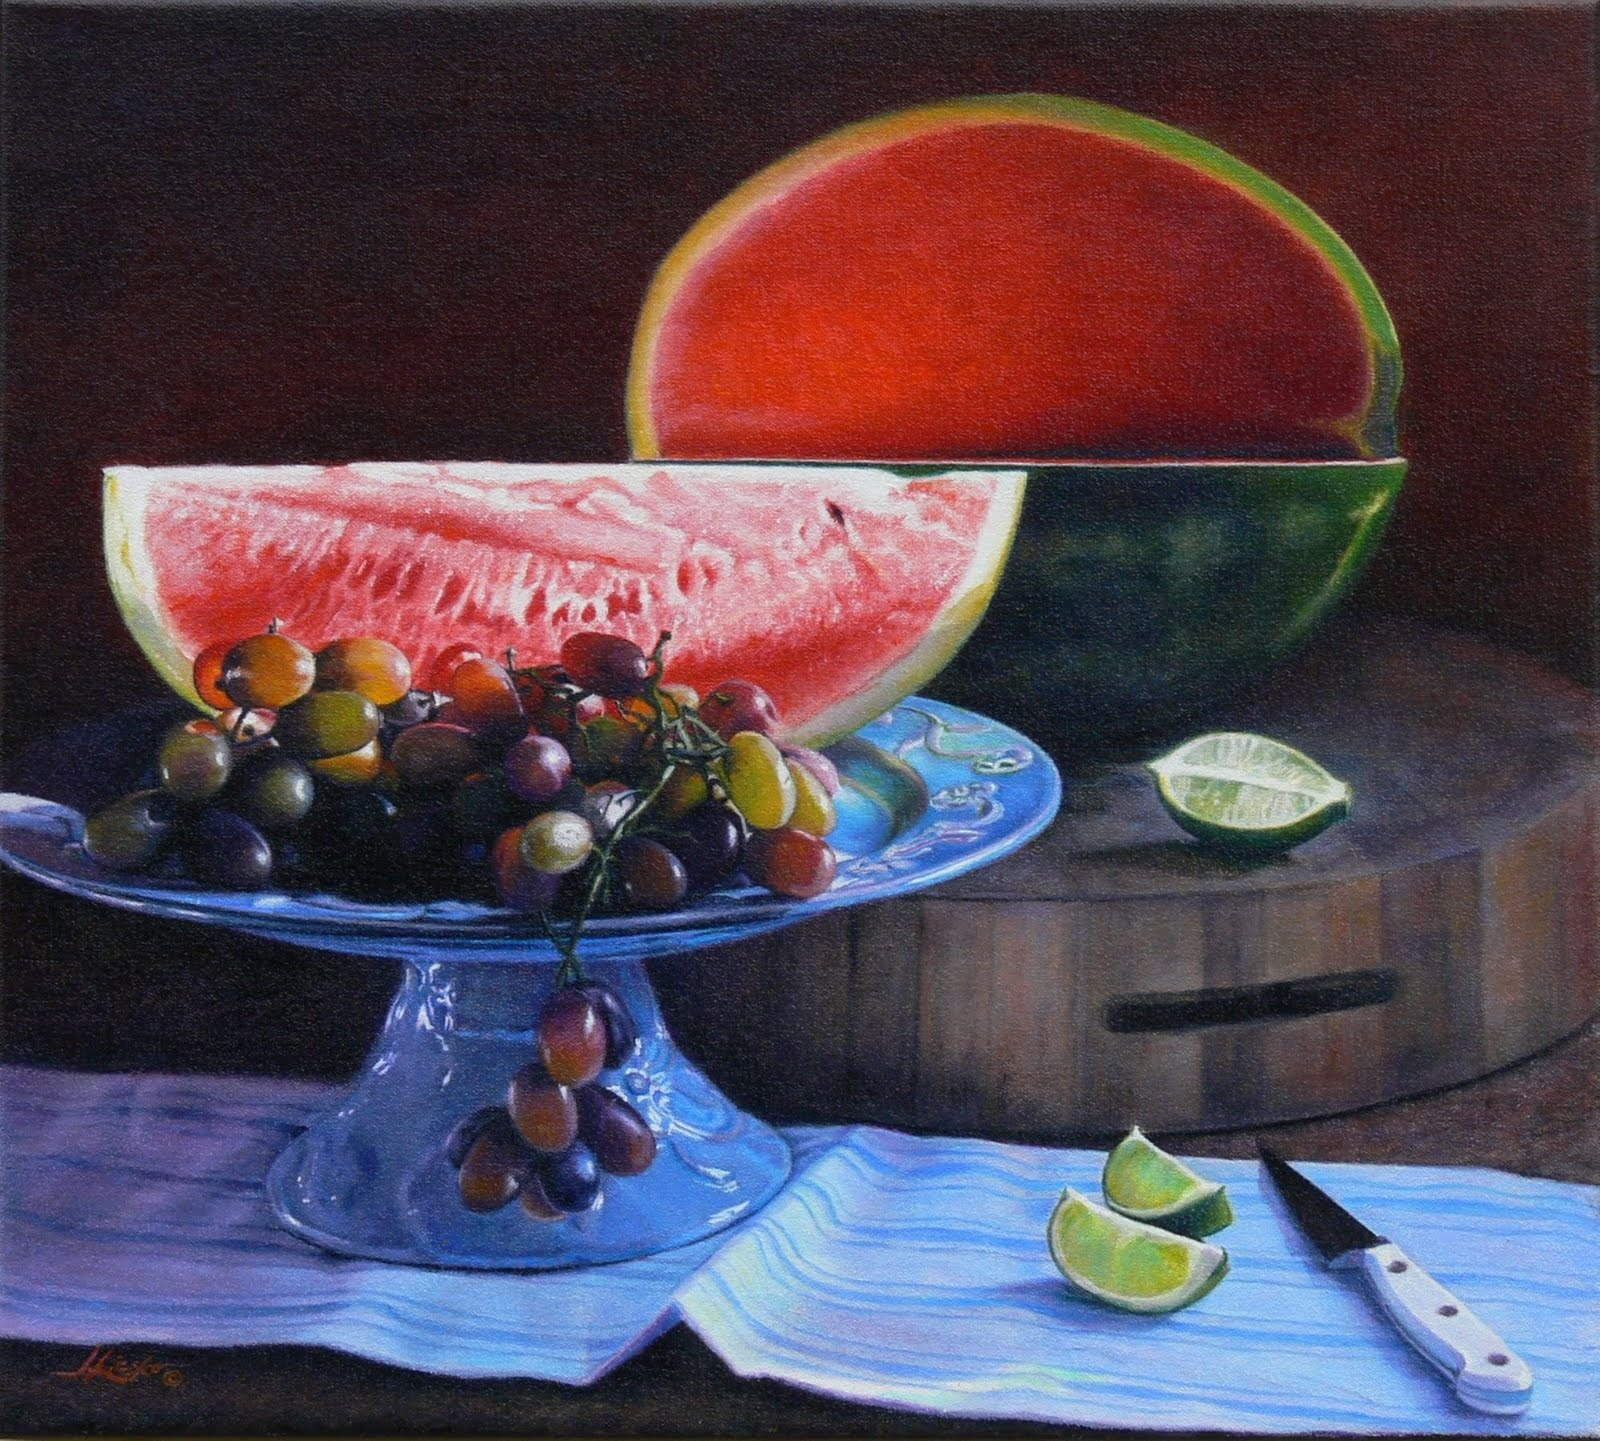 [Watermelon+with+Grapes©+J.Licsko+2010+oil+on+canvas+18]